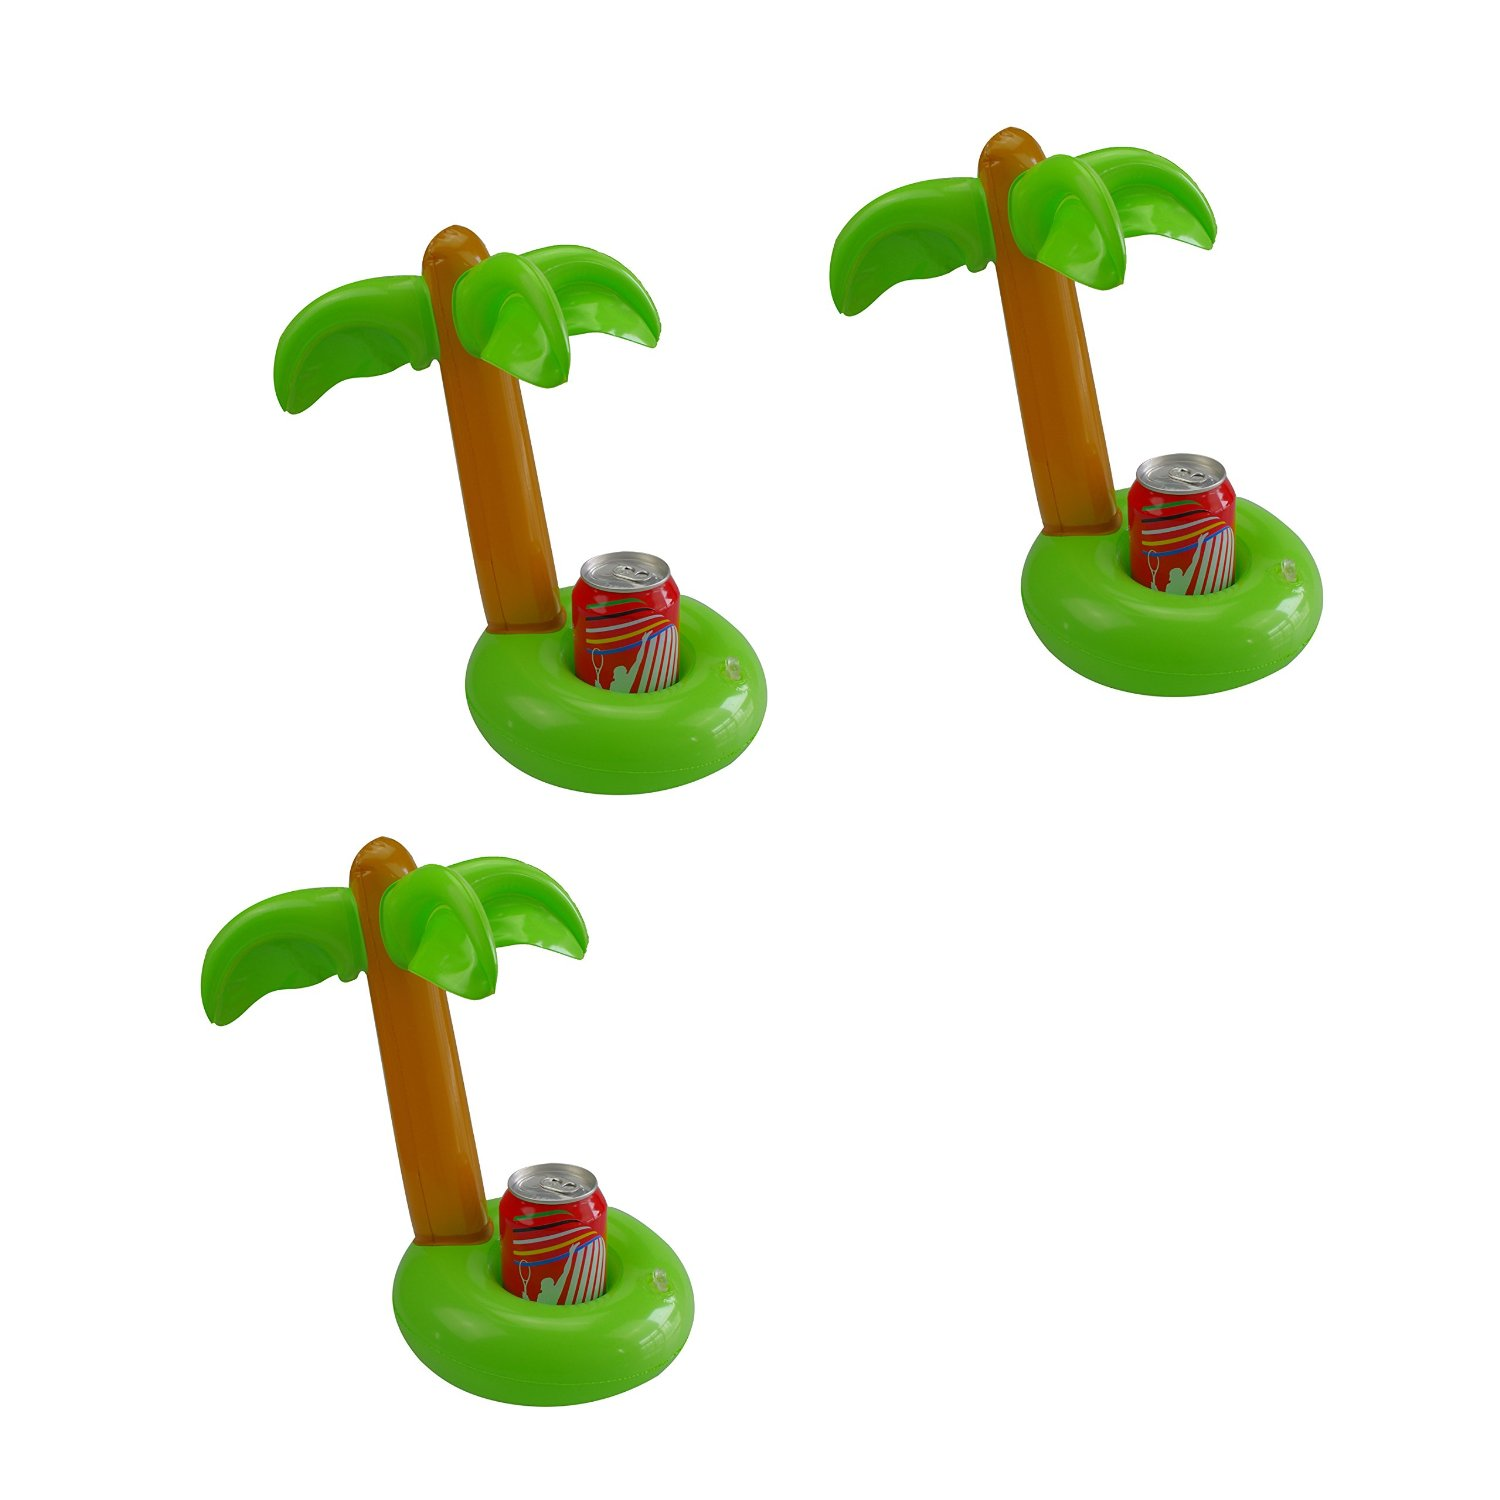 Mirenlife Inflatable Palm Island Drink Holders, Floatation Devices, Inflate Floating Coasters, 3 Pack